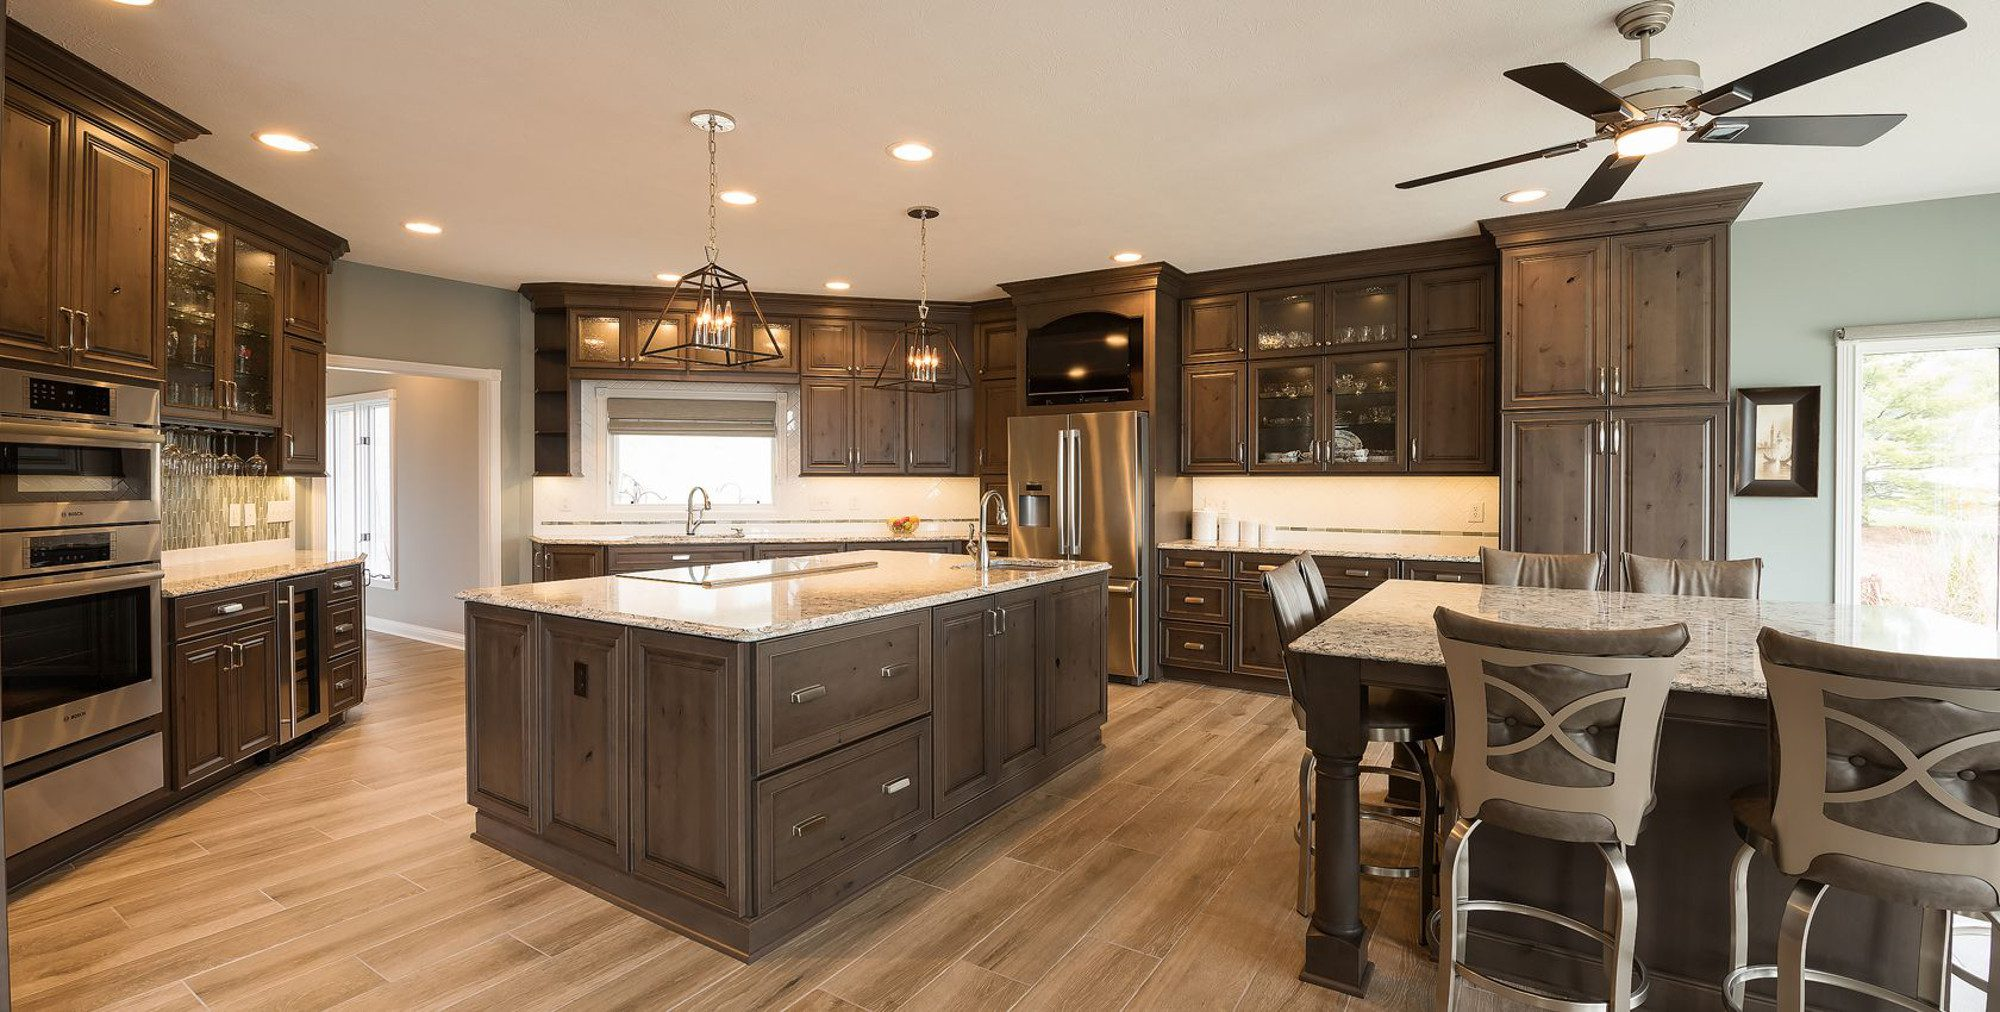 Kitchen Remodel Indianapolis Set Amazing Case Remodelingdesign Indianapolis Inspiration Design